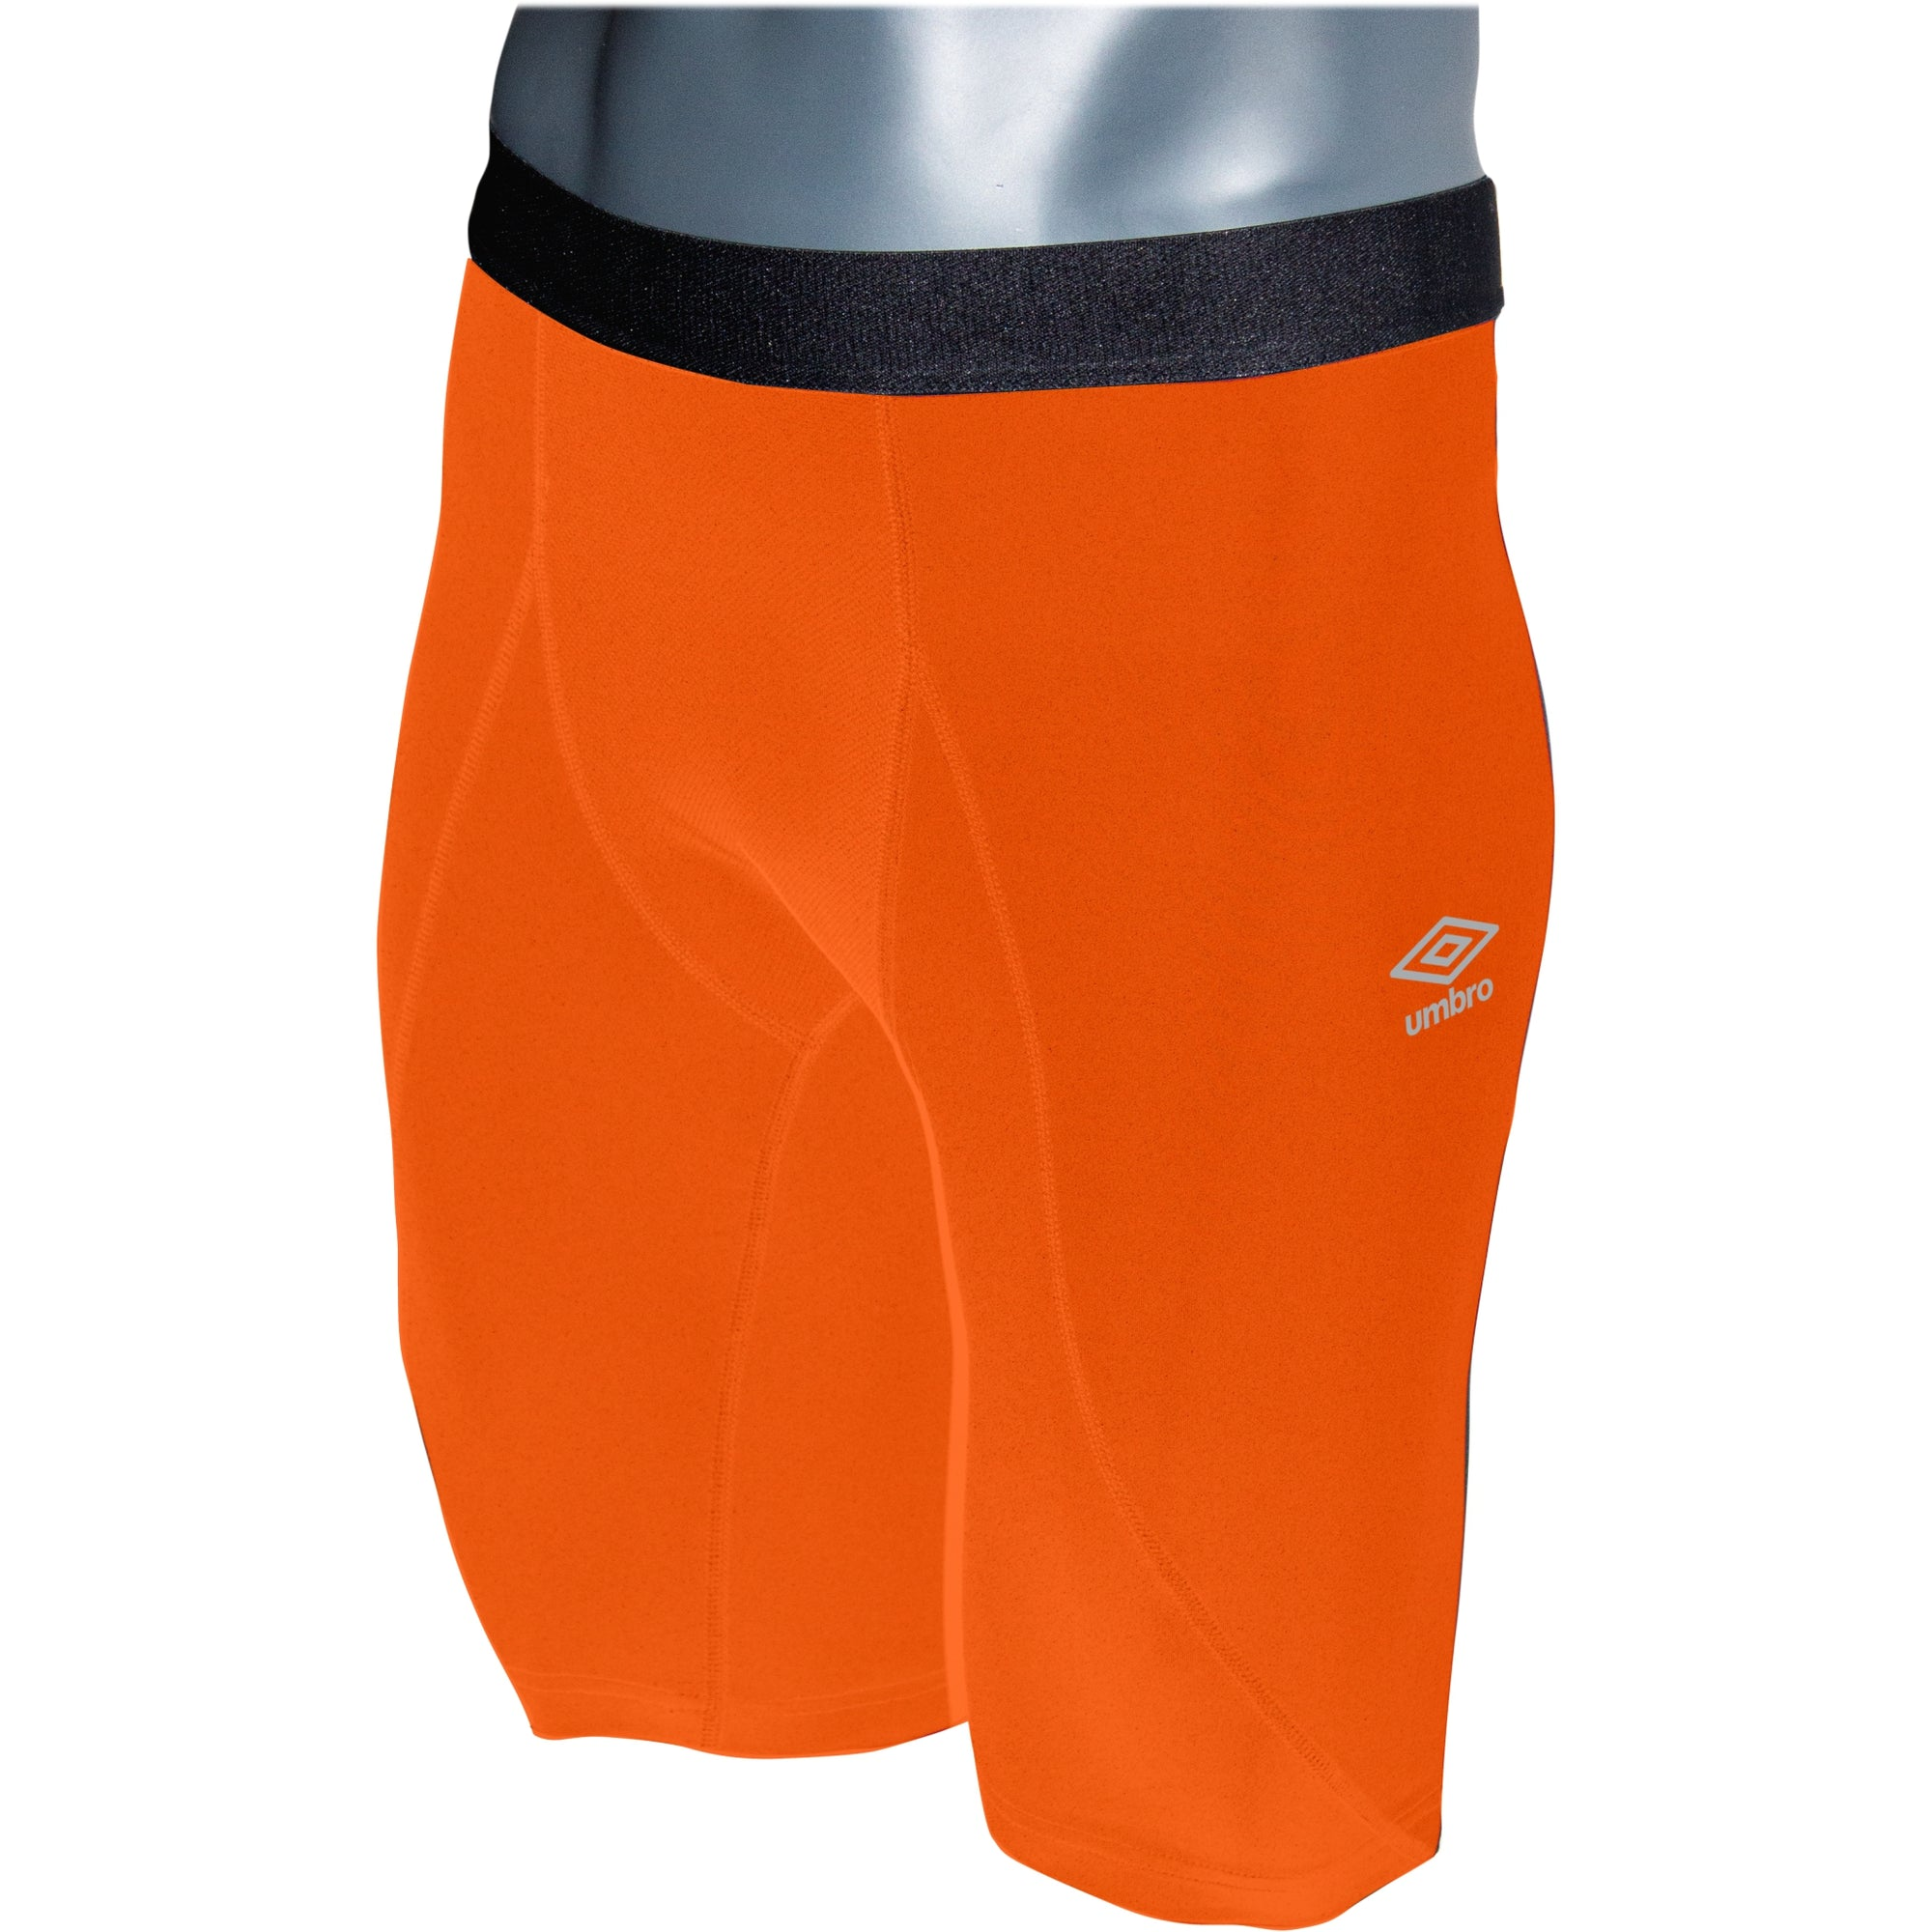 Umbro Elite Player Power Short in shocking orange with black waist band